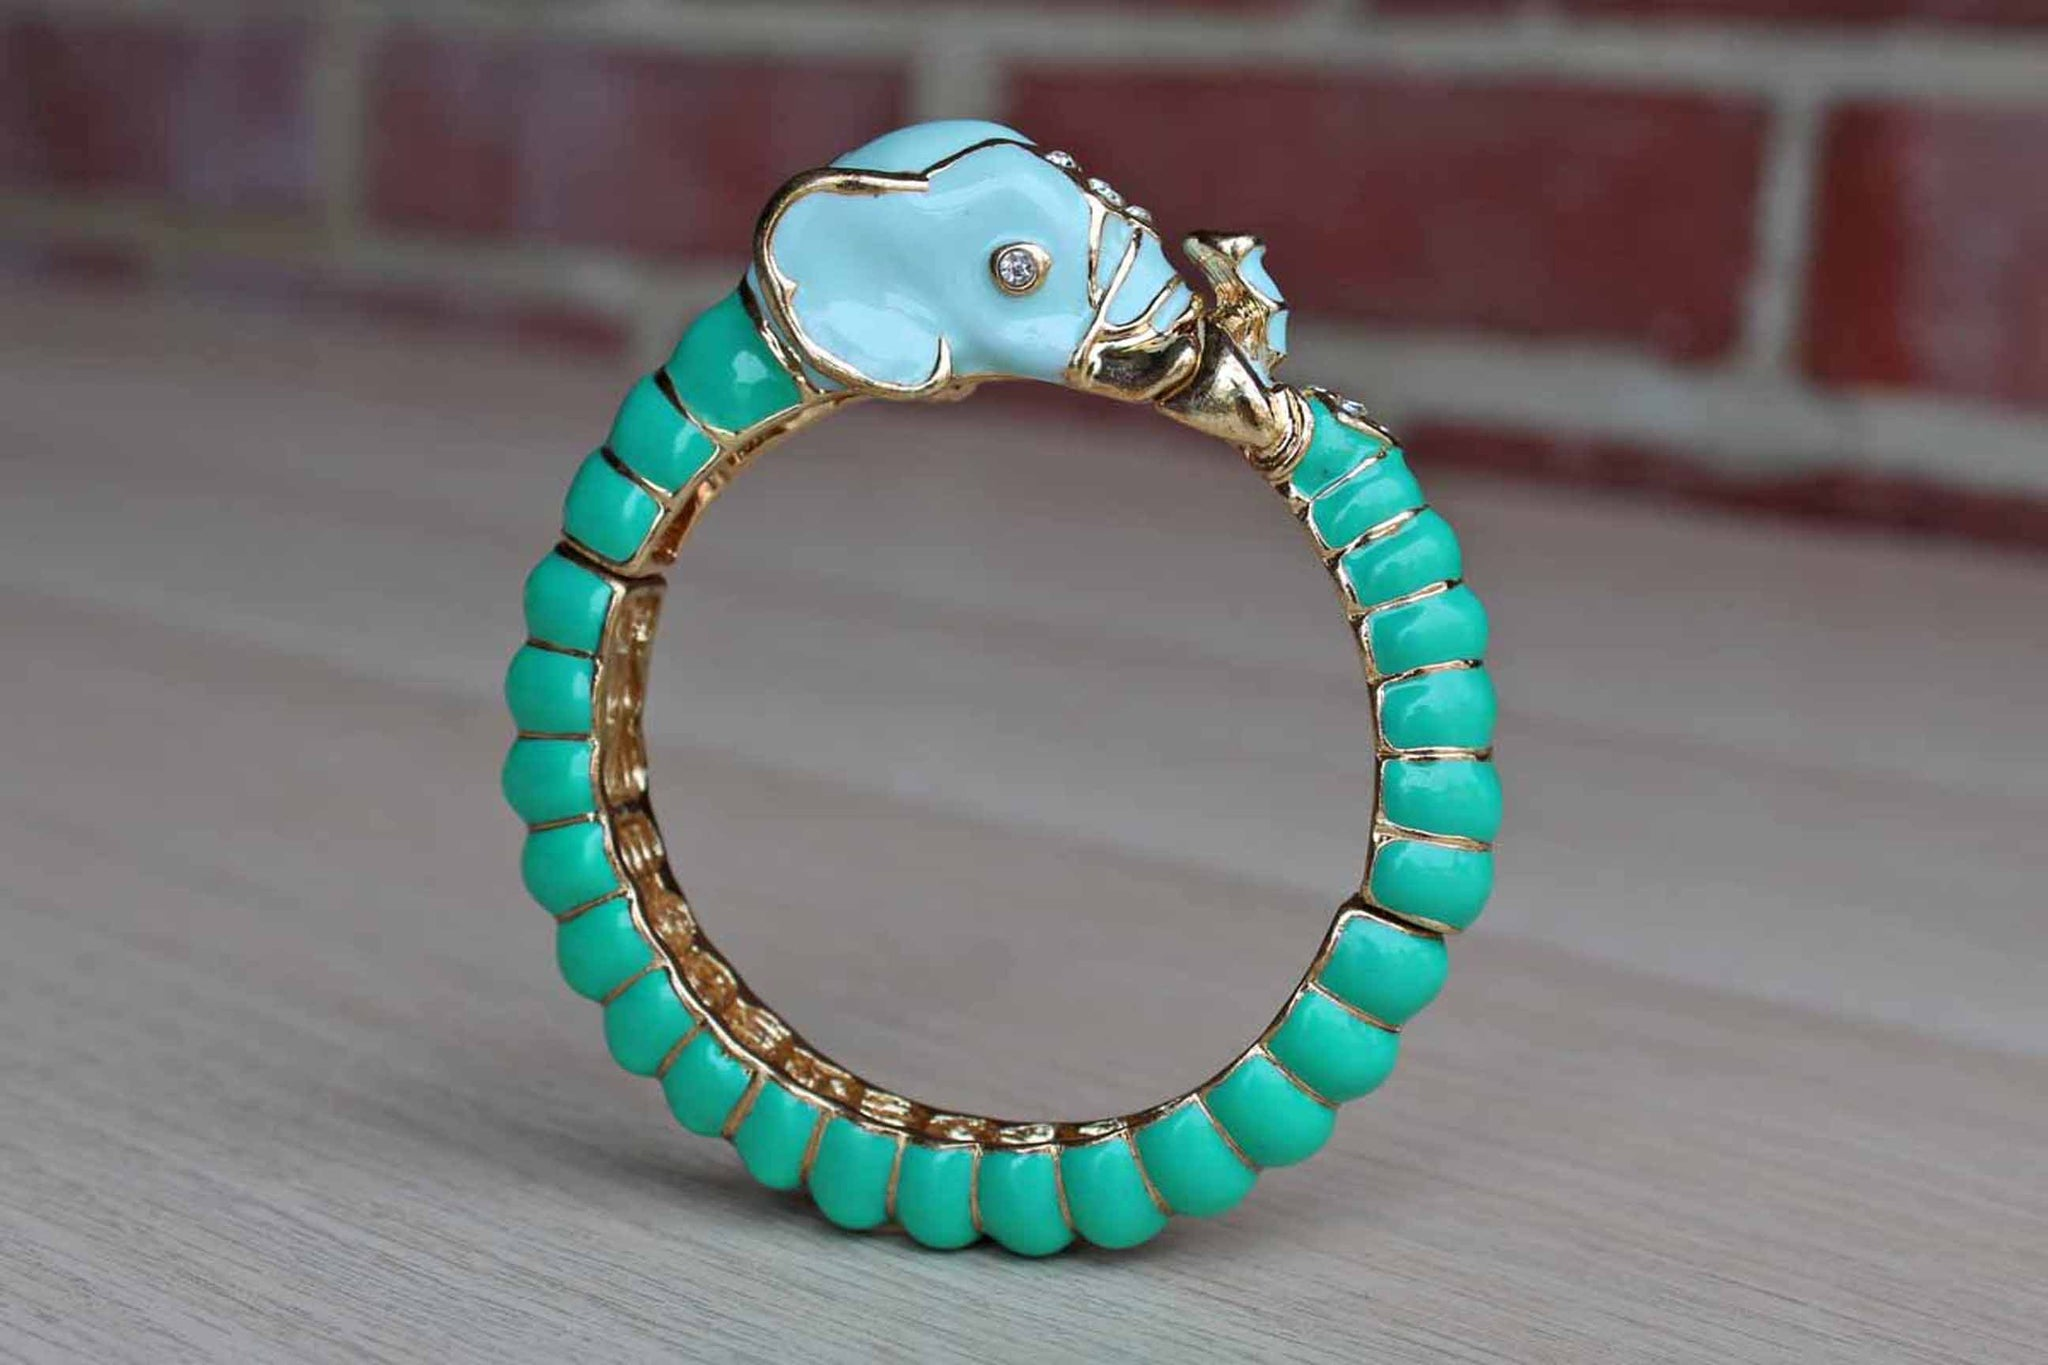 Blue and Aqua Enameled Elephant Bracelet with Silver Rhinestones